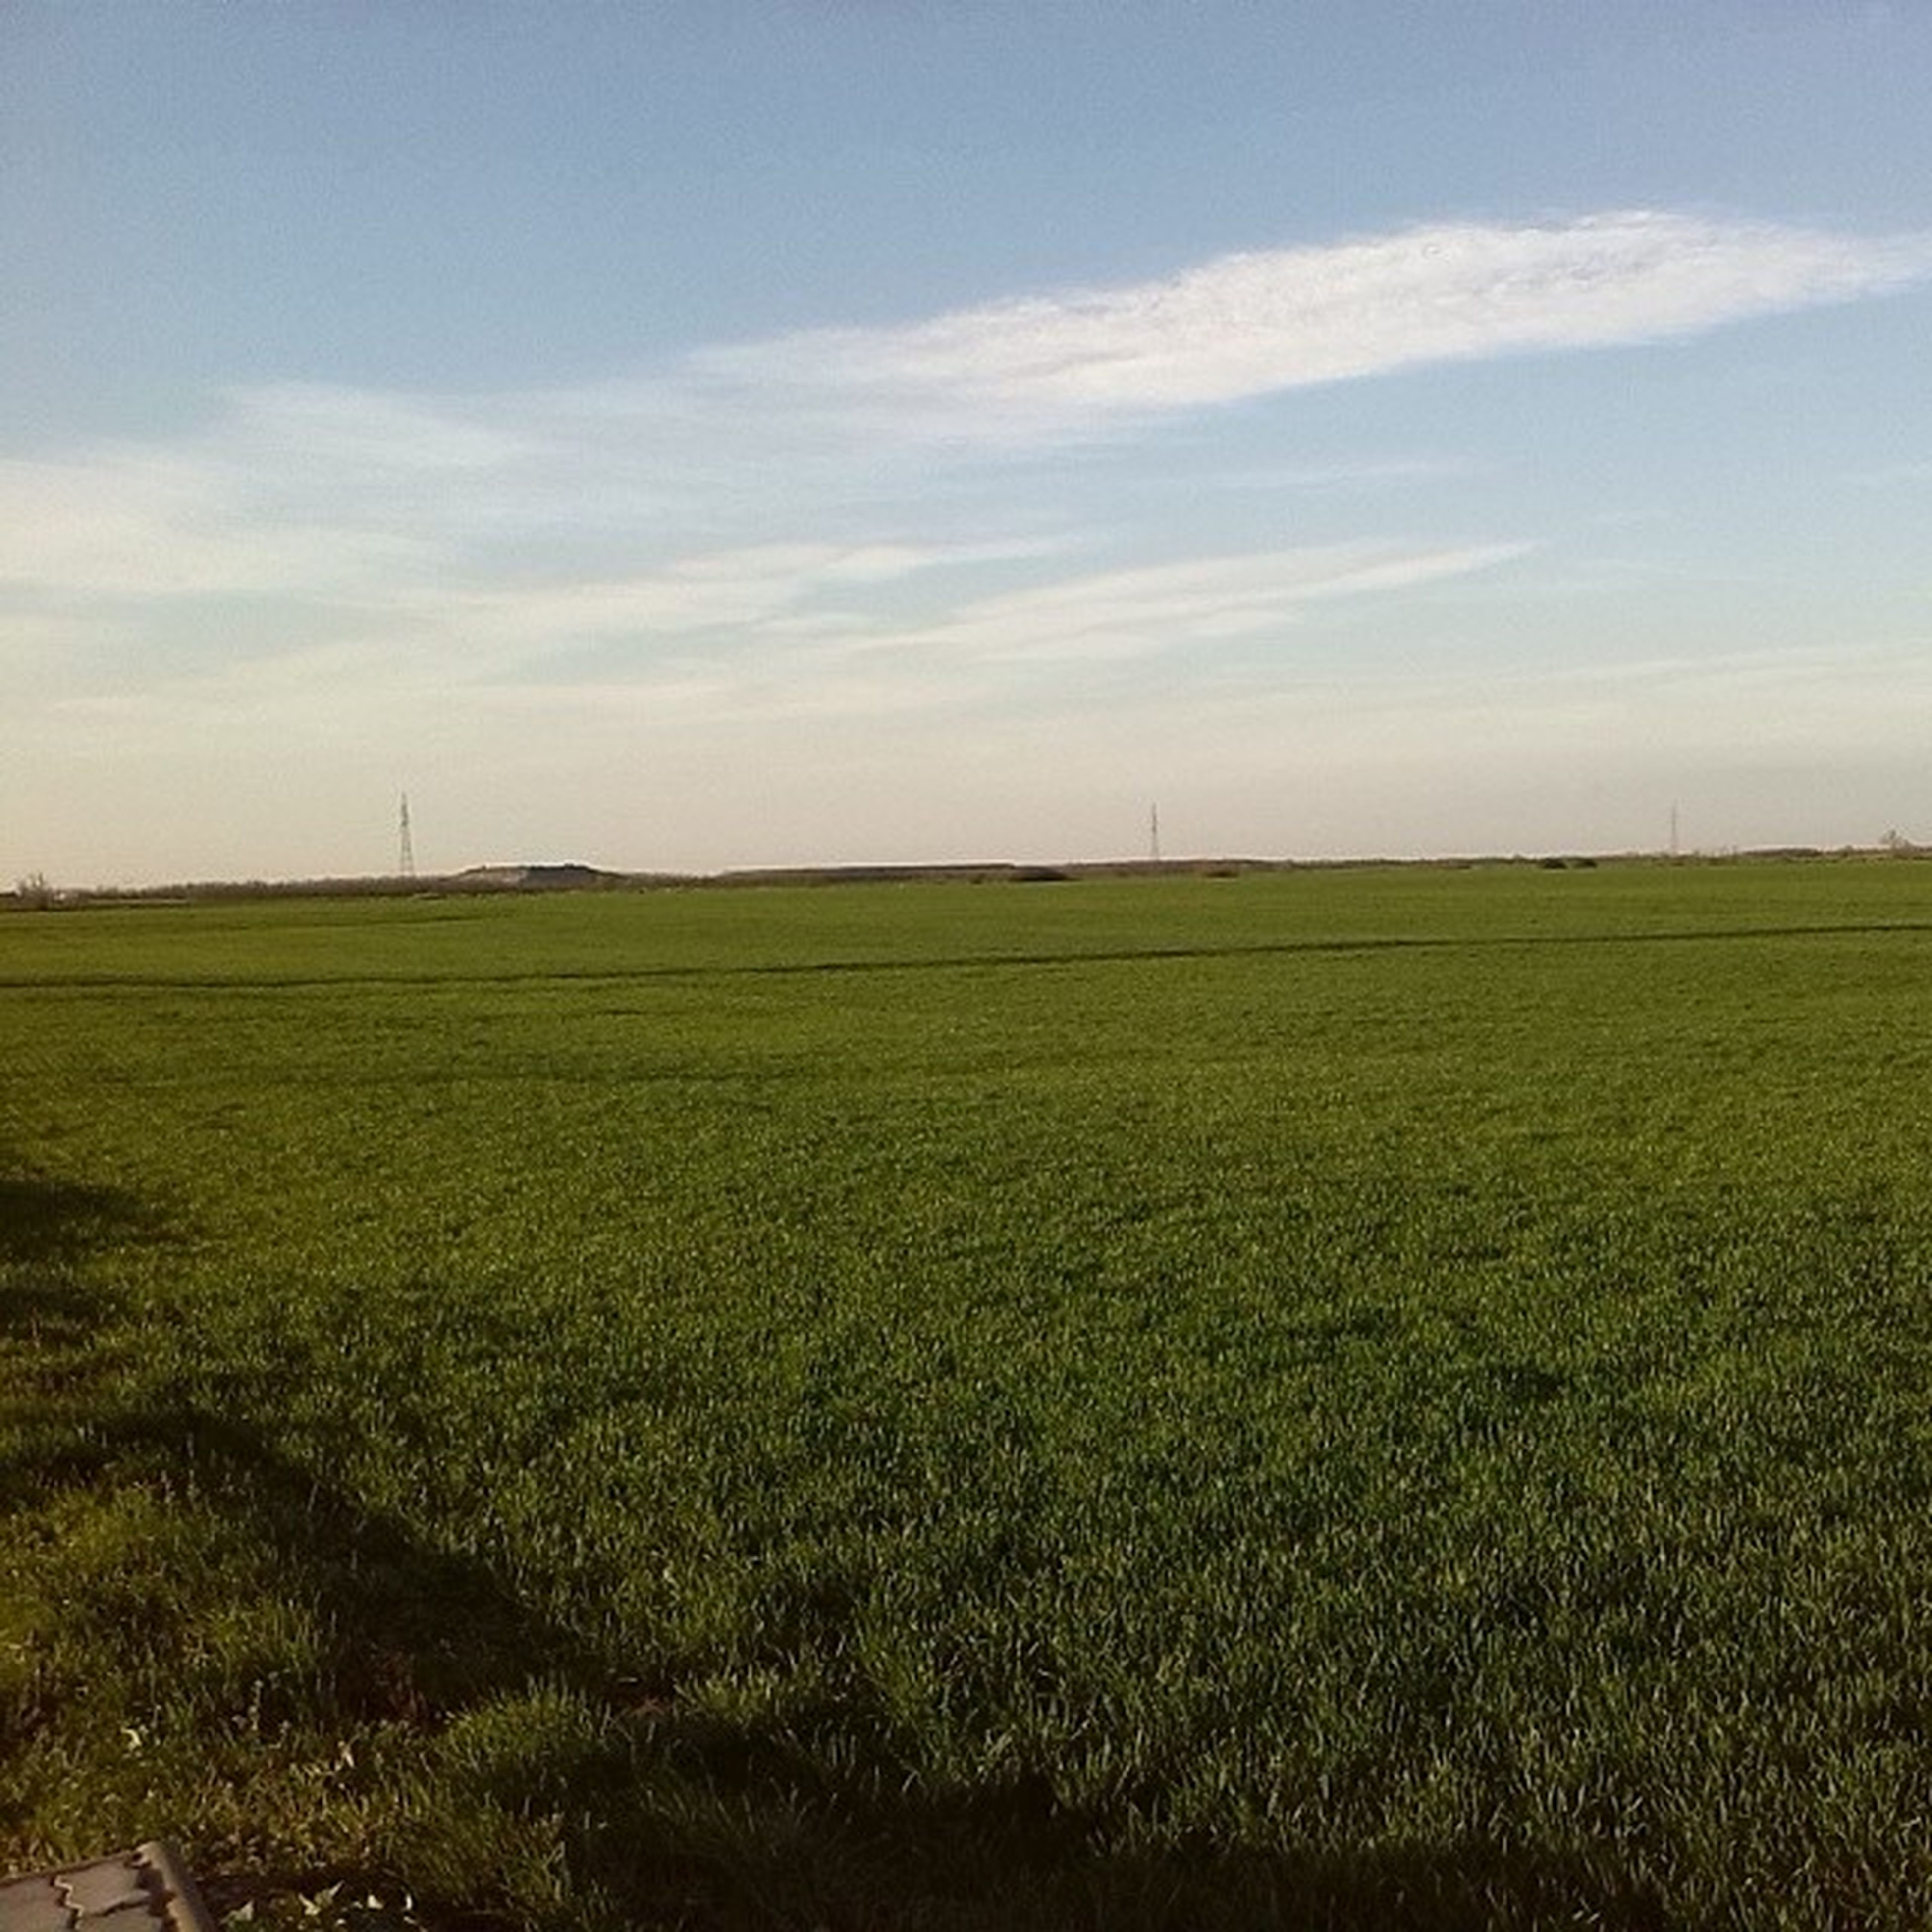 field, landscape, tranquil scene, tranquility, sky, rural scene, grass, agriculture, scenics, beauty in nature, nature, farm, growth, green color, cloud - sky, horizon over land, grassy, crop, cloud, cultivated land